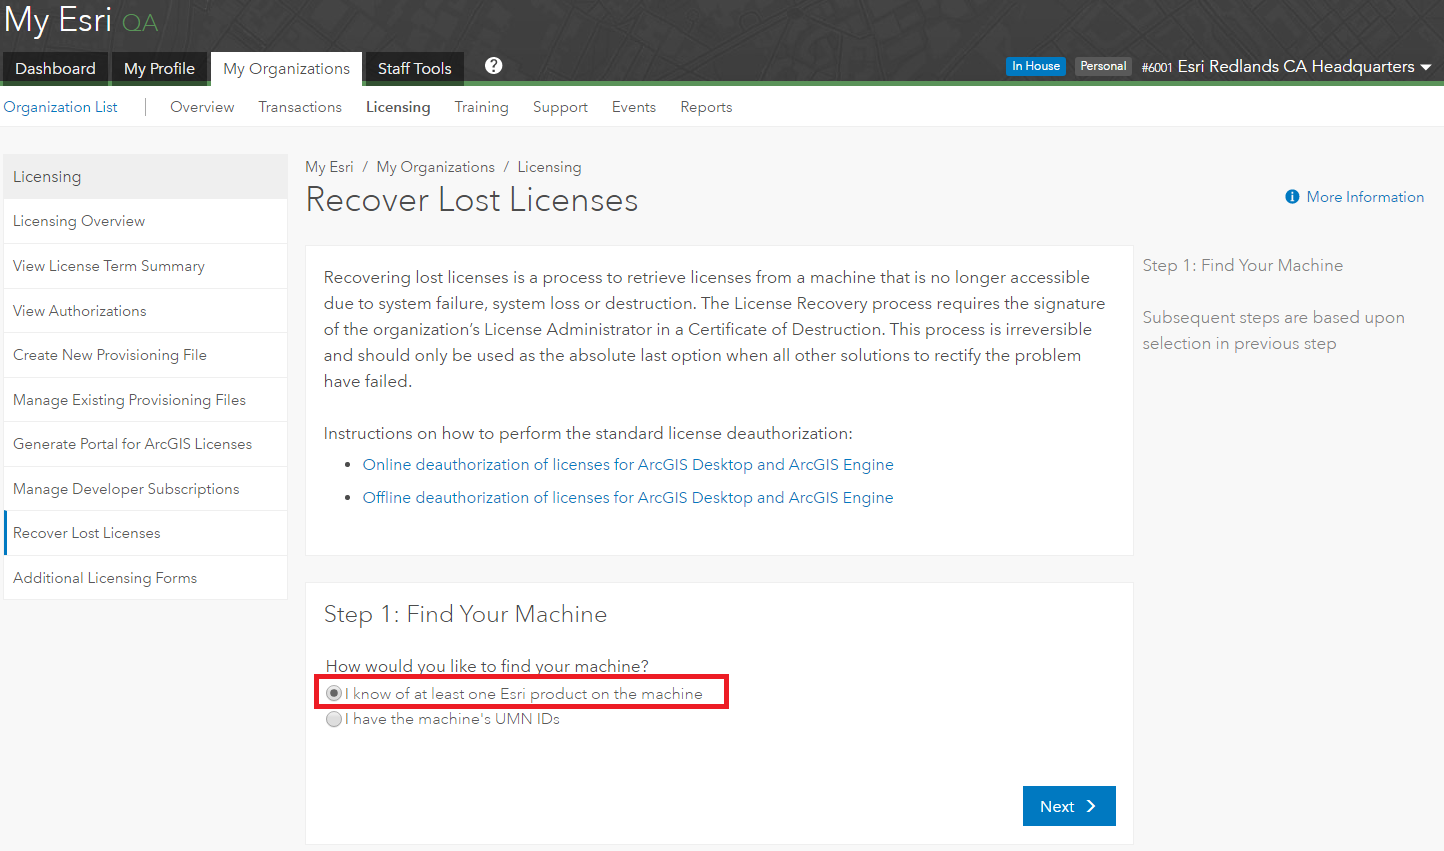 Image of the Recover Lost Licenses page